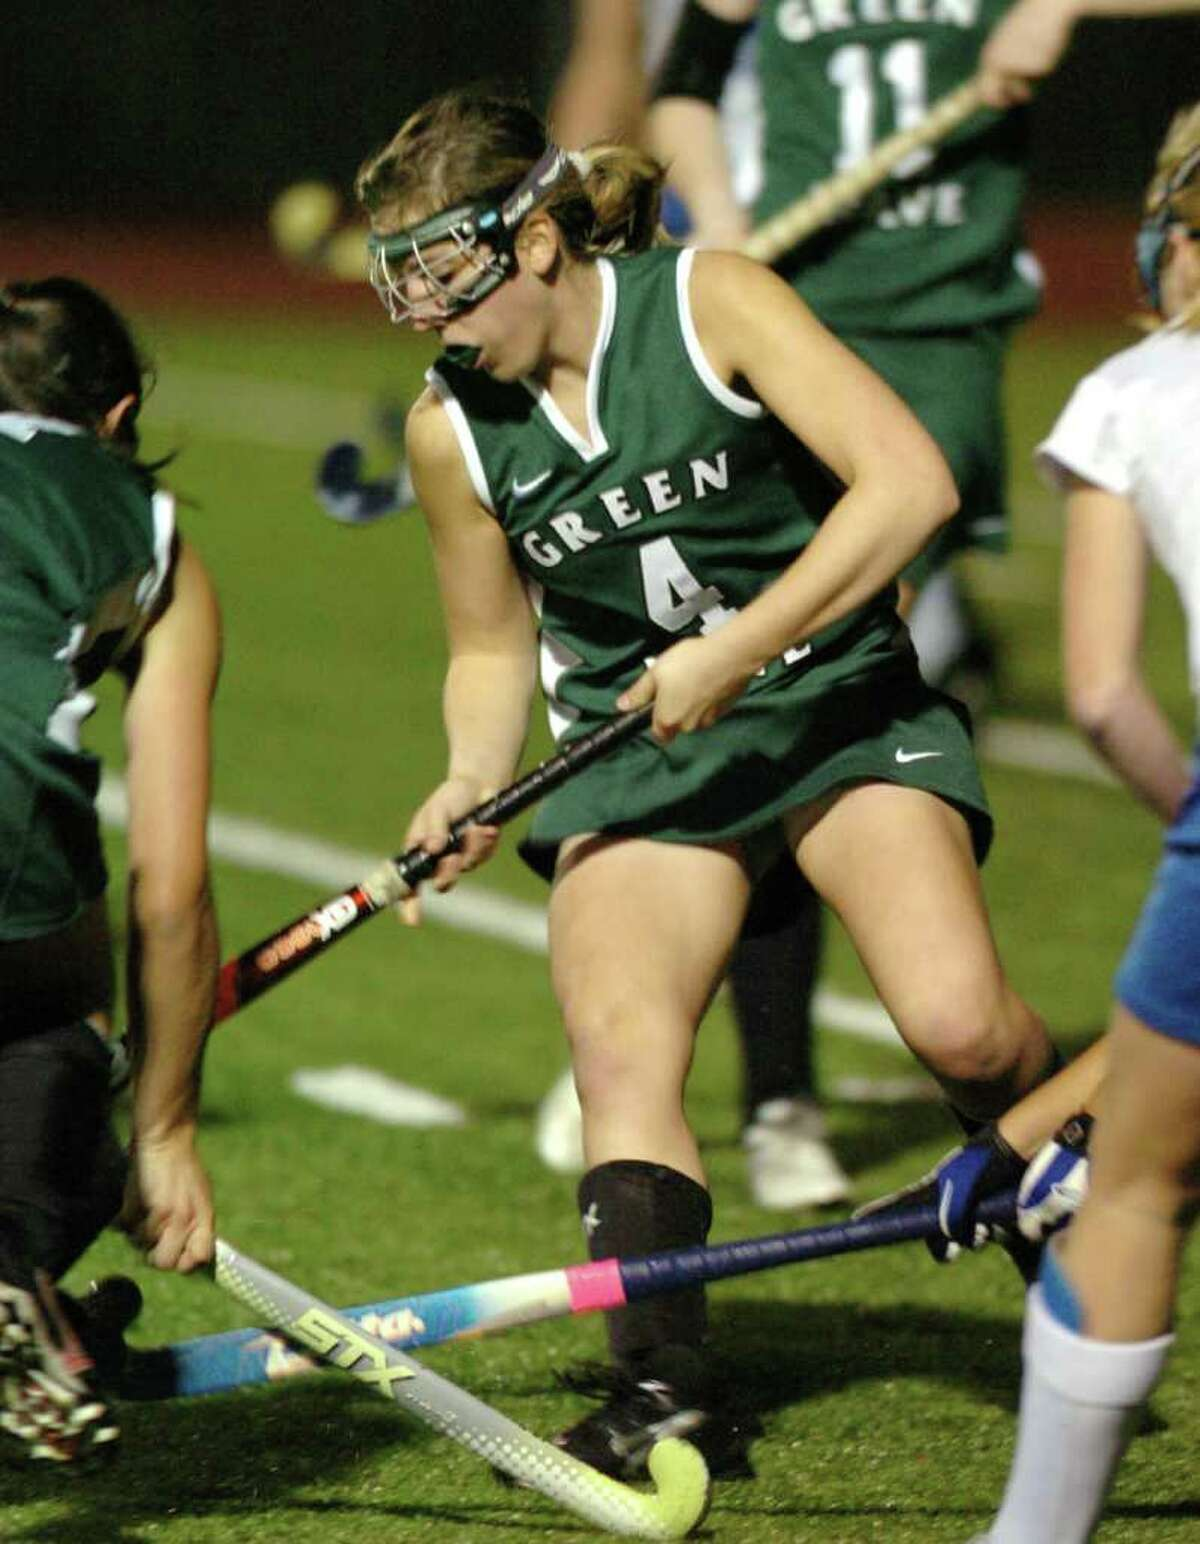 New Milford's 4, Katie Kelly competes with Glastonbury during the field hockey game at Watertown High School Nov. 16, 2010.